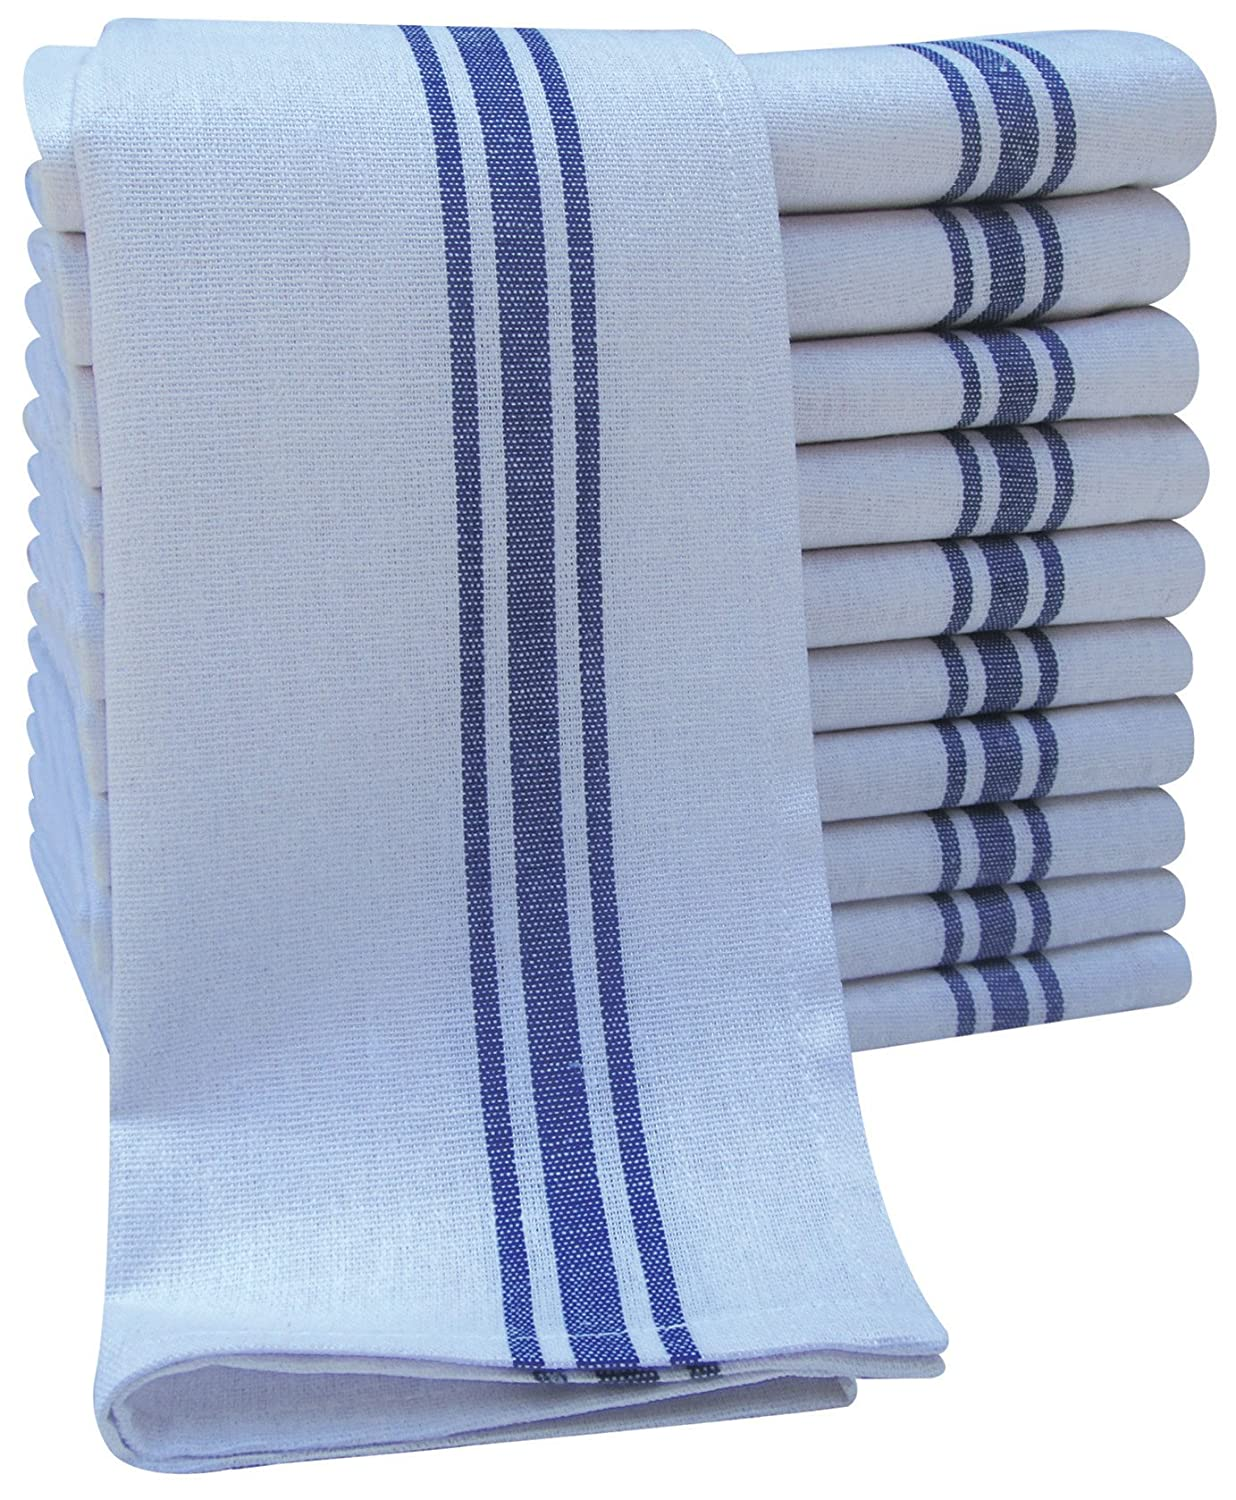 Pack of 10 Cotton Catering Tea Towels Restaurant Kitchen Glass Cloths